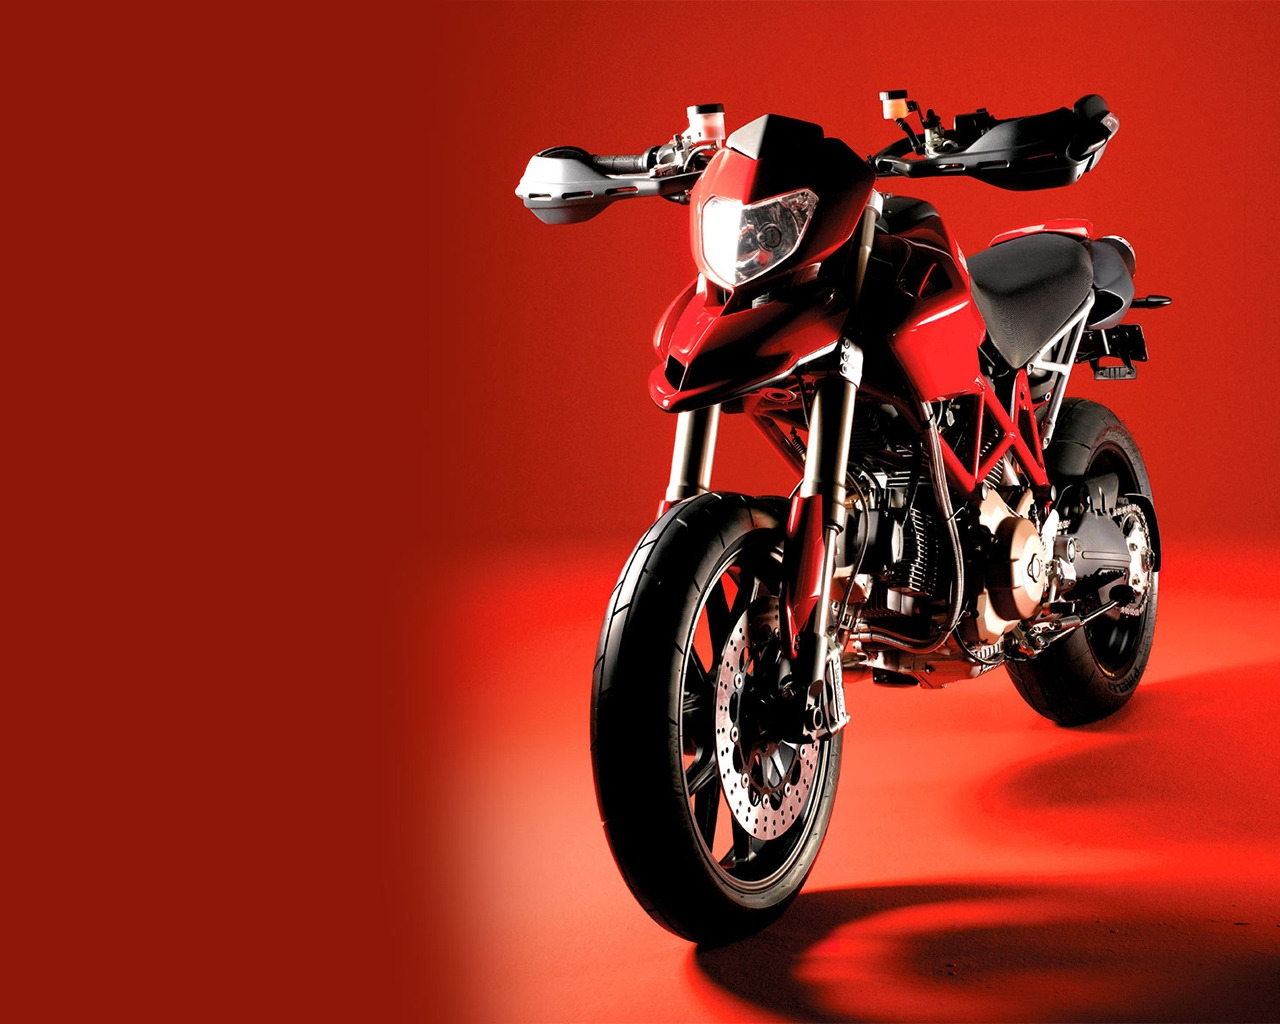 Ducati Hypermotard Red for 1280 x 1024 resolution